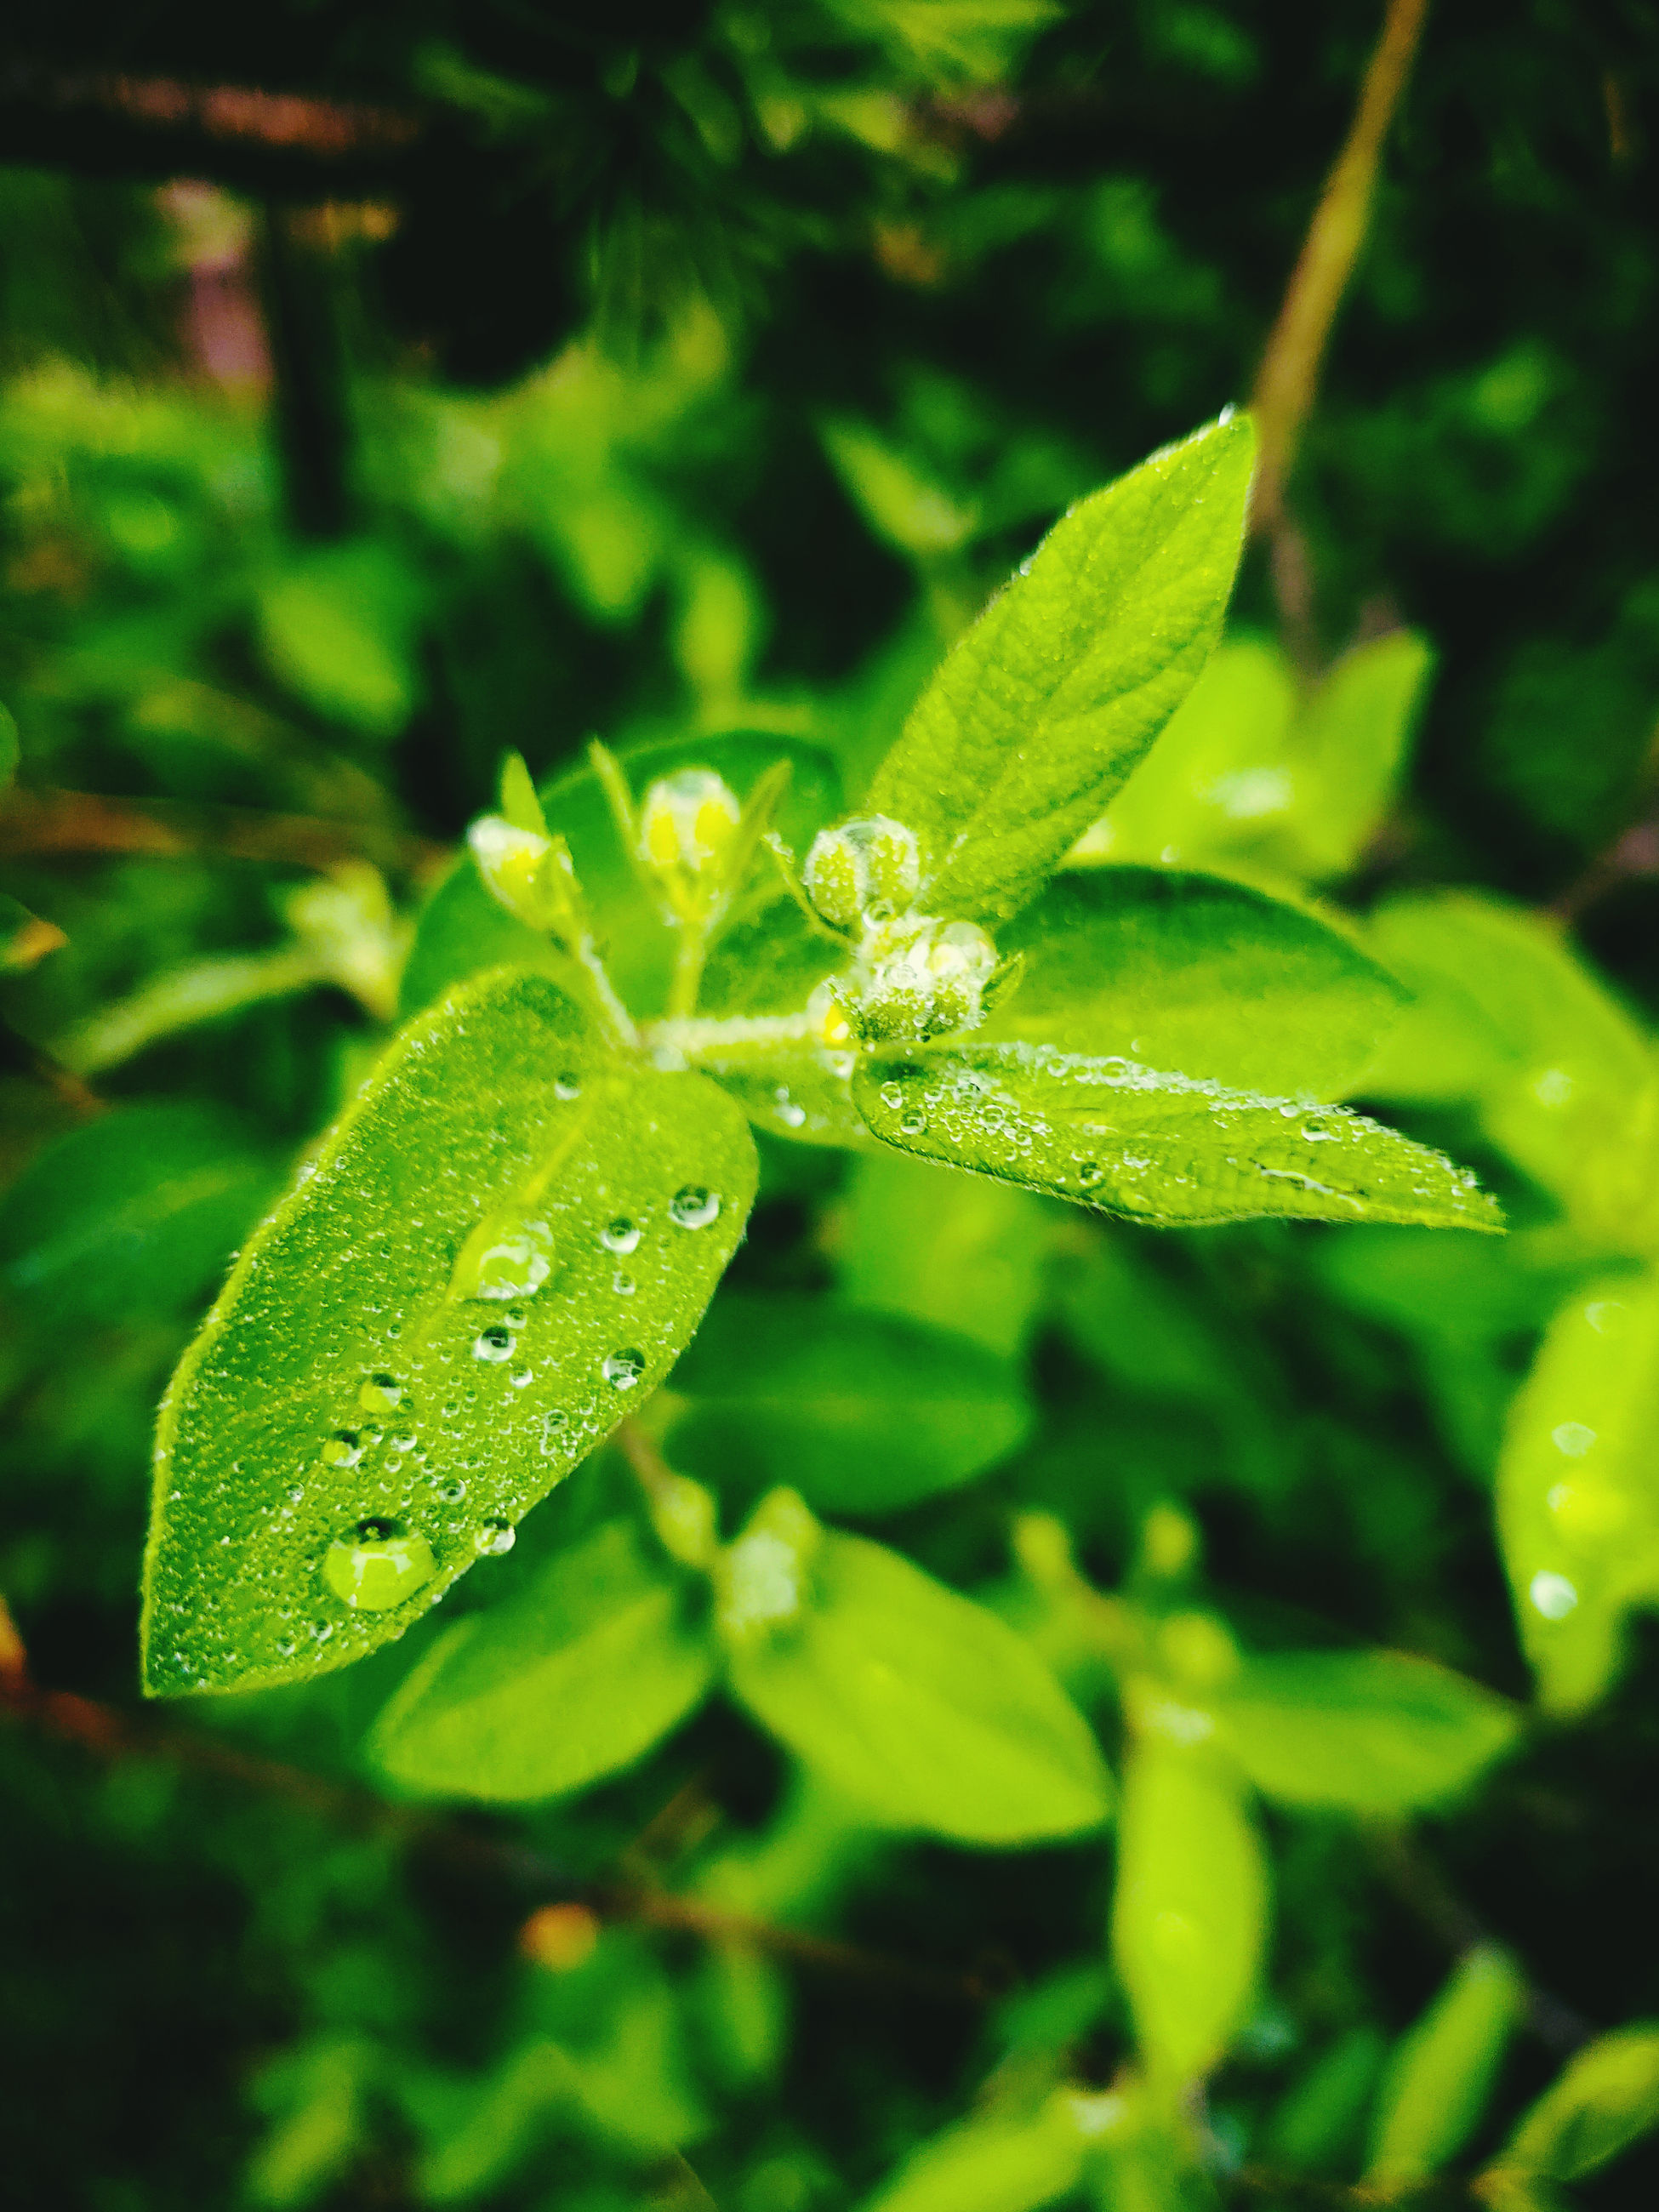 green color, plant, leaf, plant part, growth, drop, water, close-up, nature, wet, beauty in nature, no people, freshness, day, selective focus, focus on foreground, outdoors, fragility, vulnerability, dew, rain, raindrop, purity